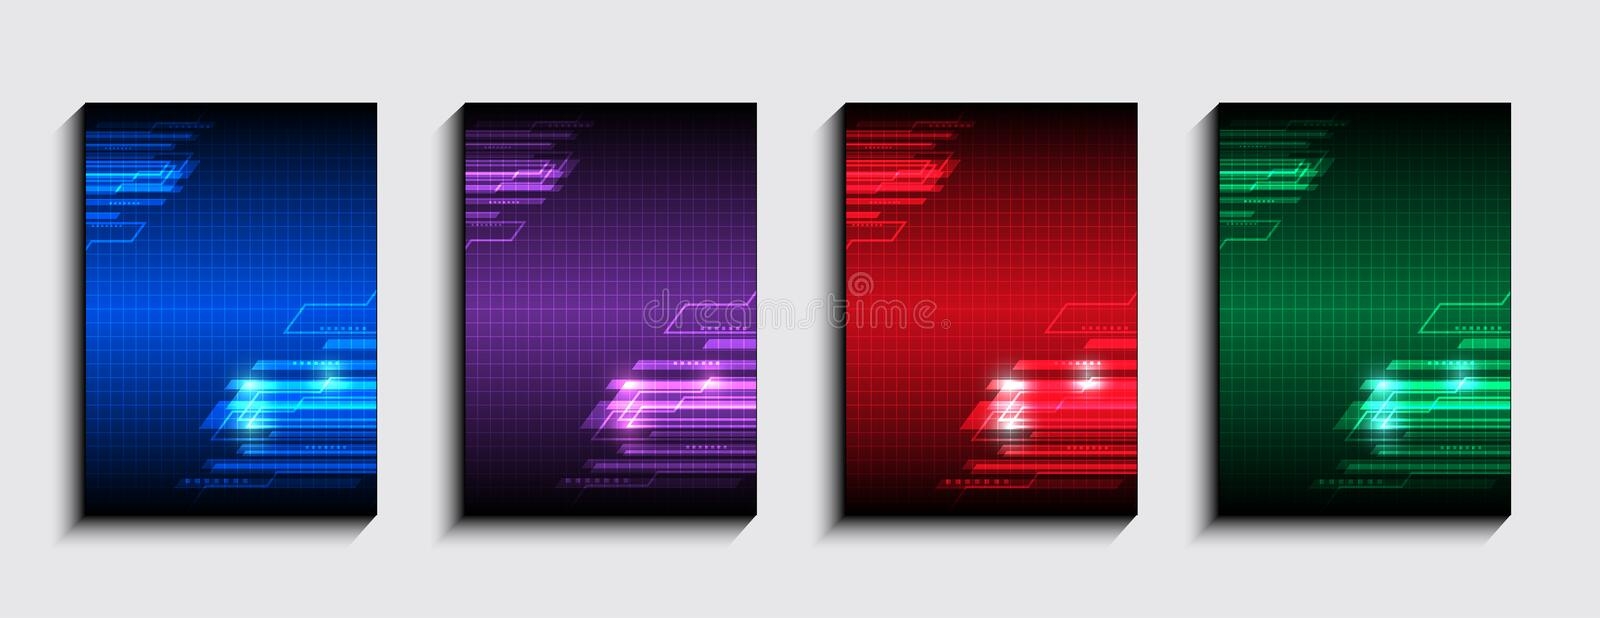 Minimal covers design, Vector technology graphic background. Layout set for covers of books, albums, notebooks, reports, magazines vector illustration